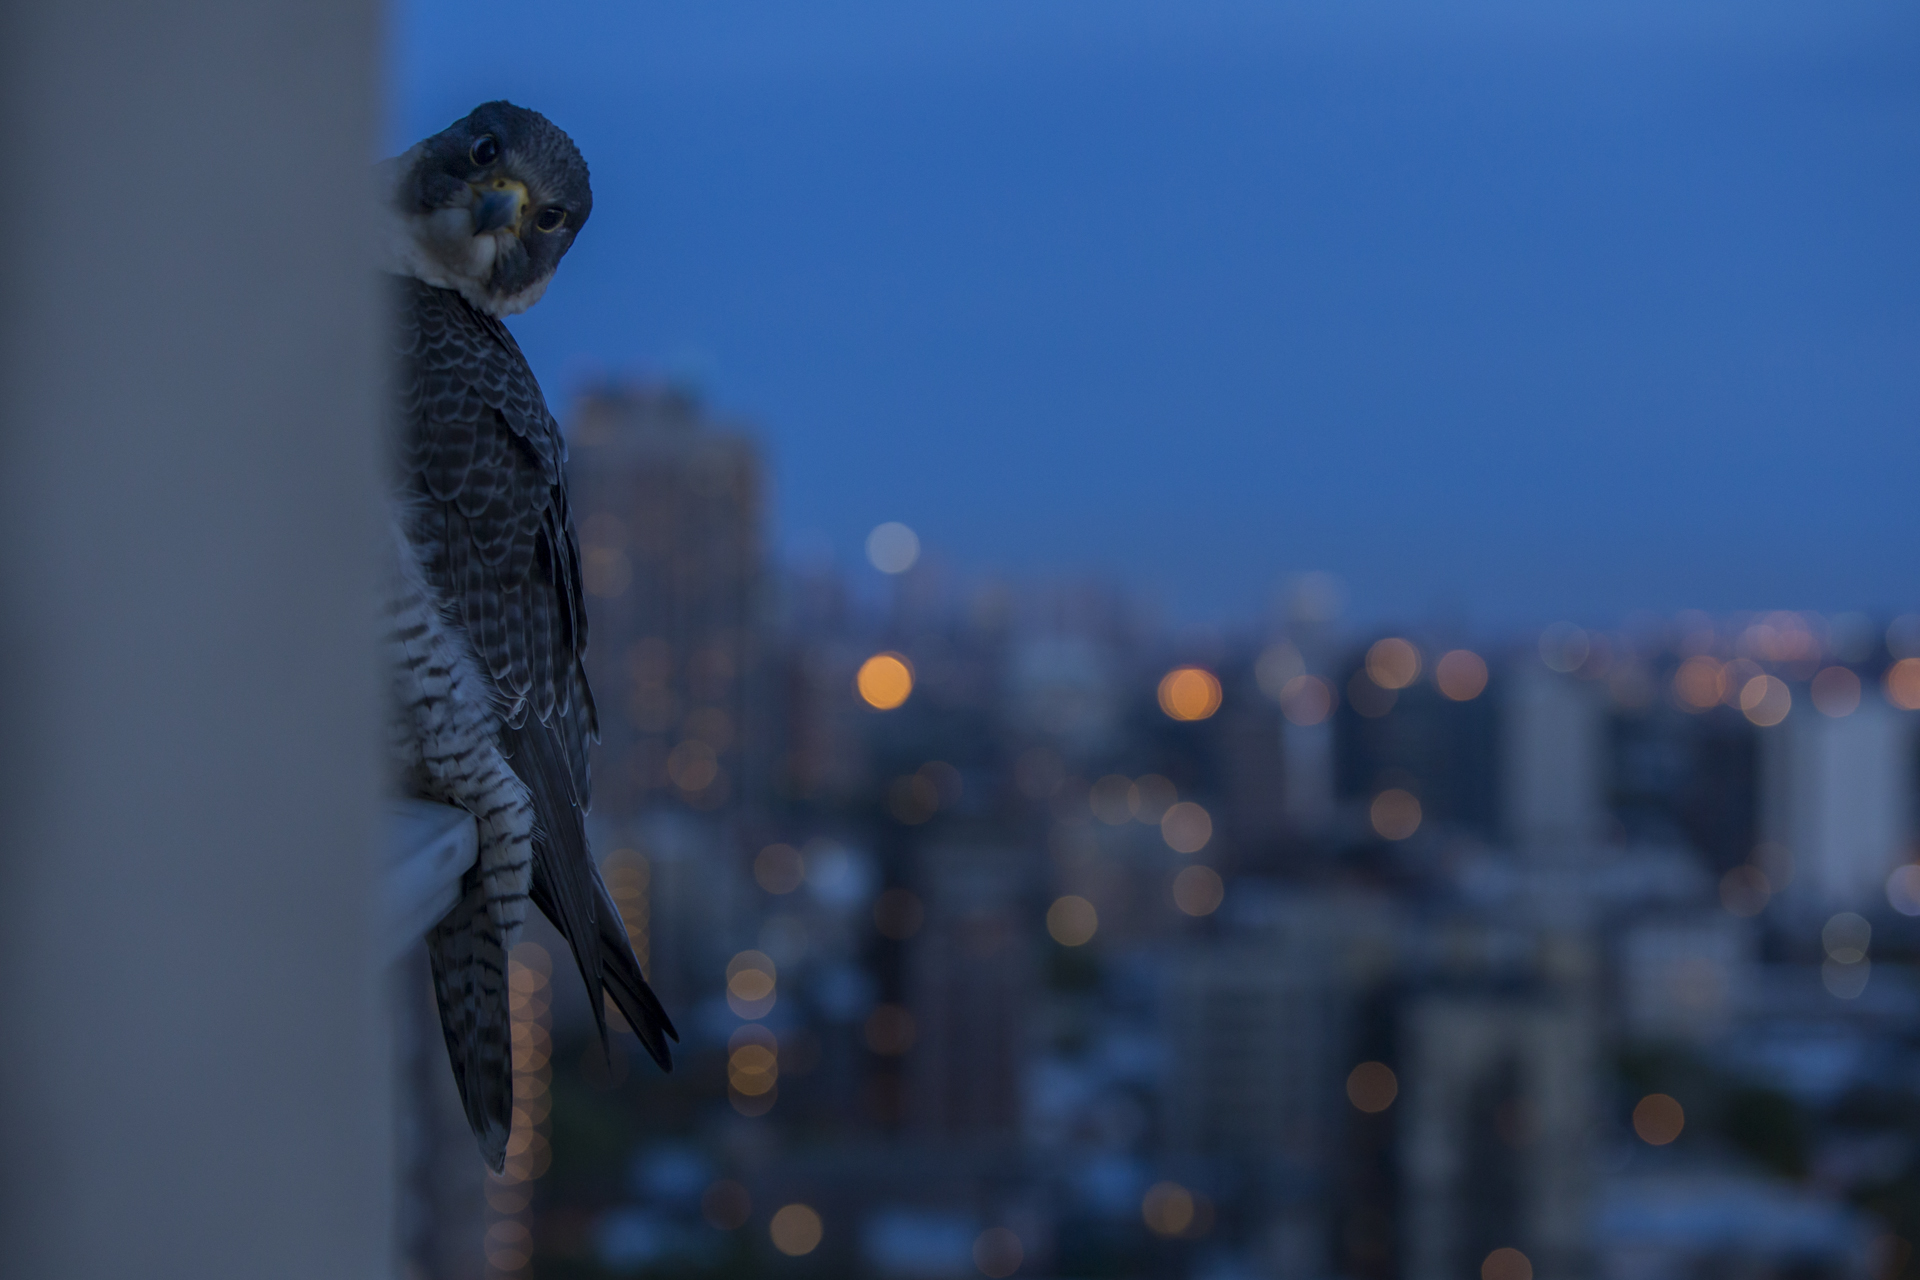 Linda, the female peers round from her nightly perching spot with the Chicago skyline beyond.